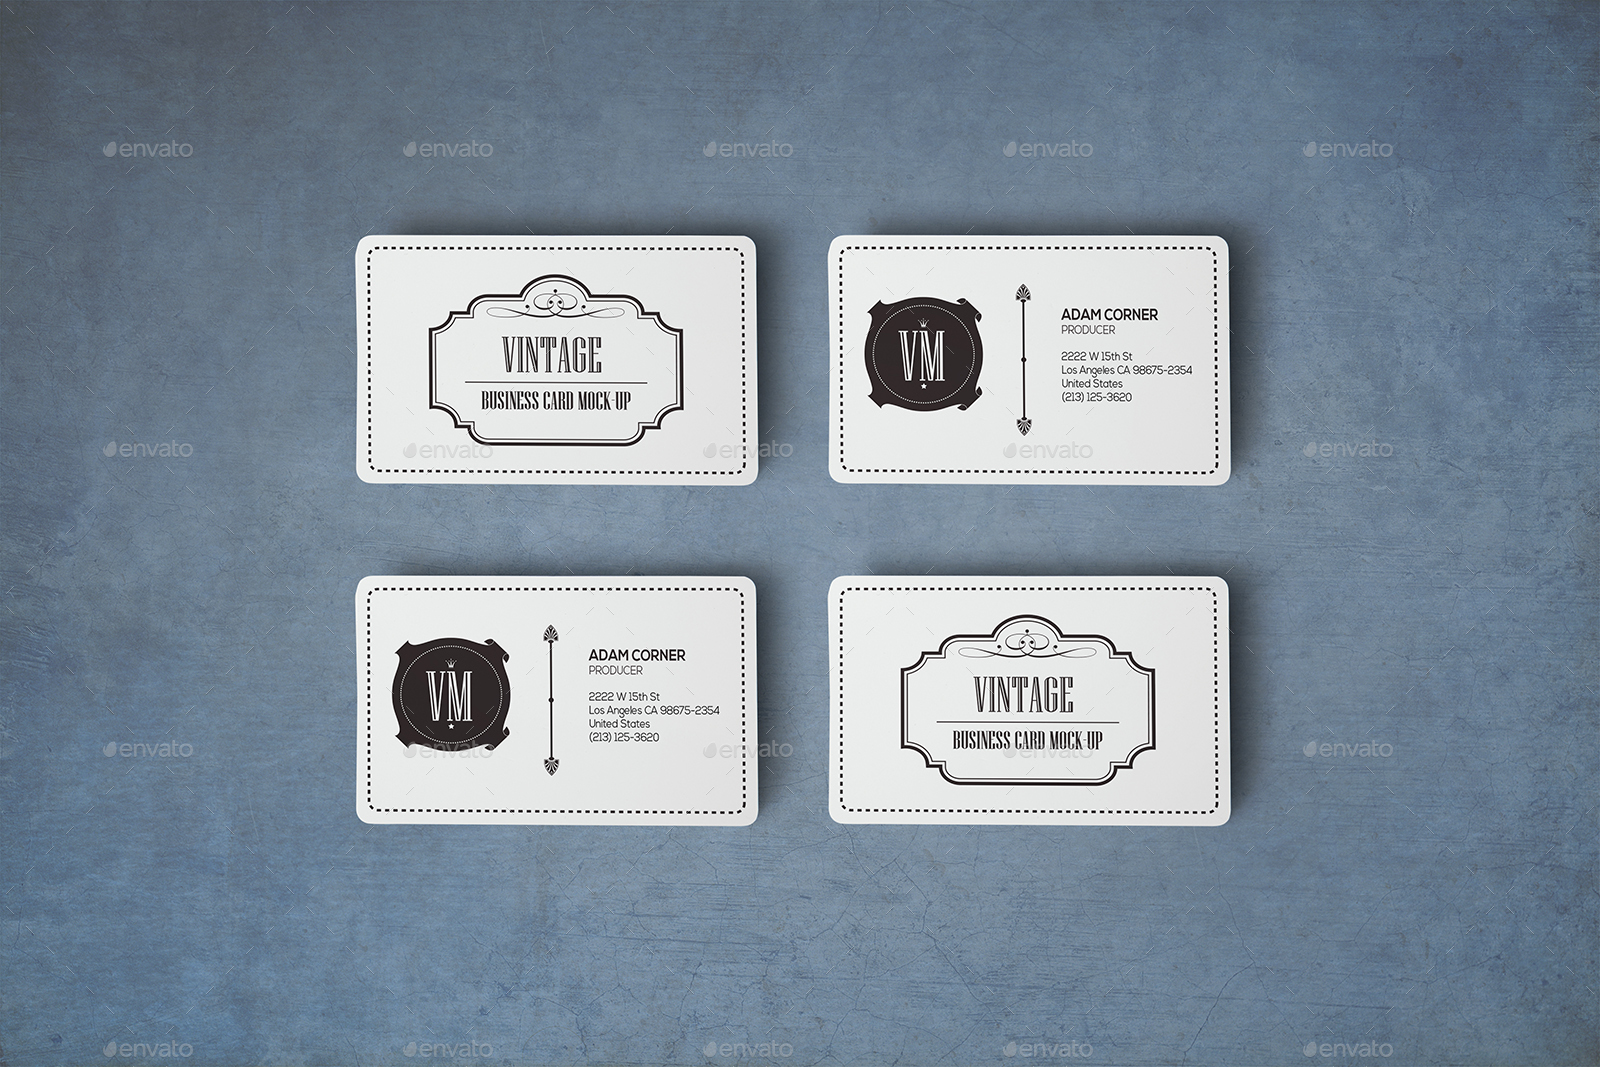 rounded corners realistic vintage business card mockups - Vintage Business Cards